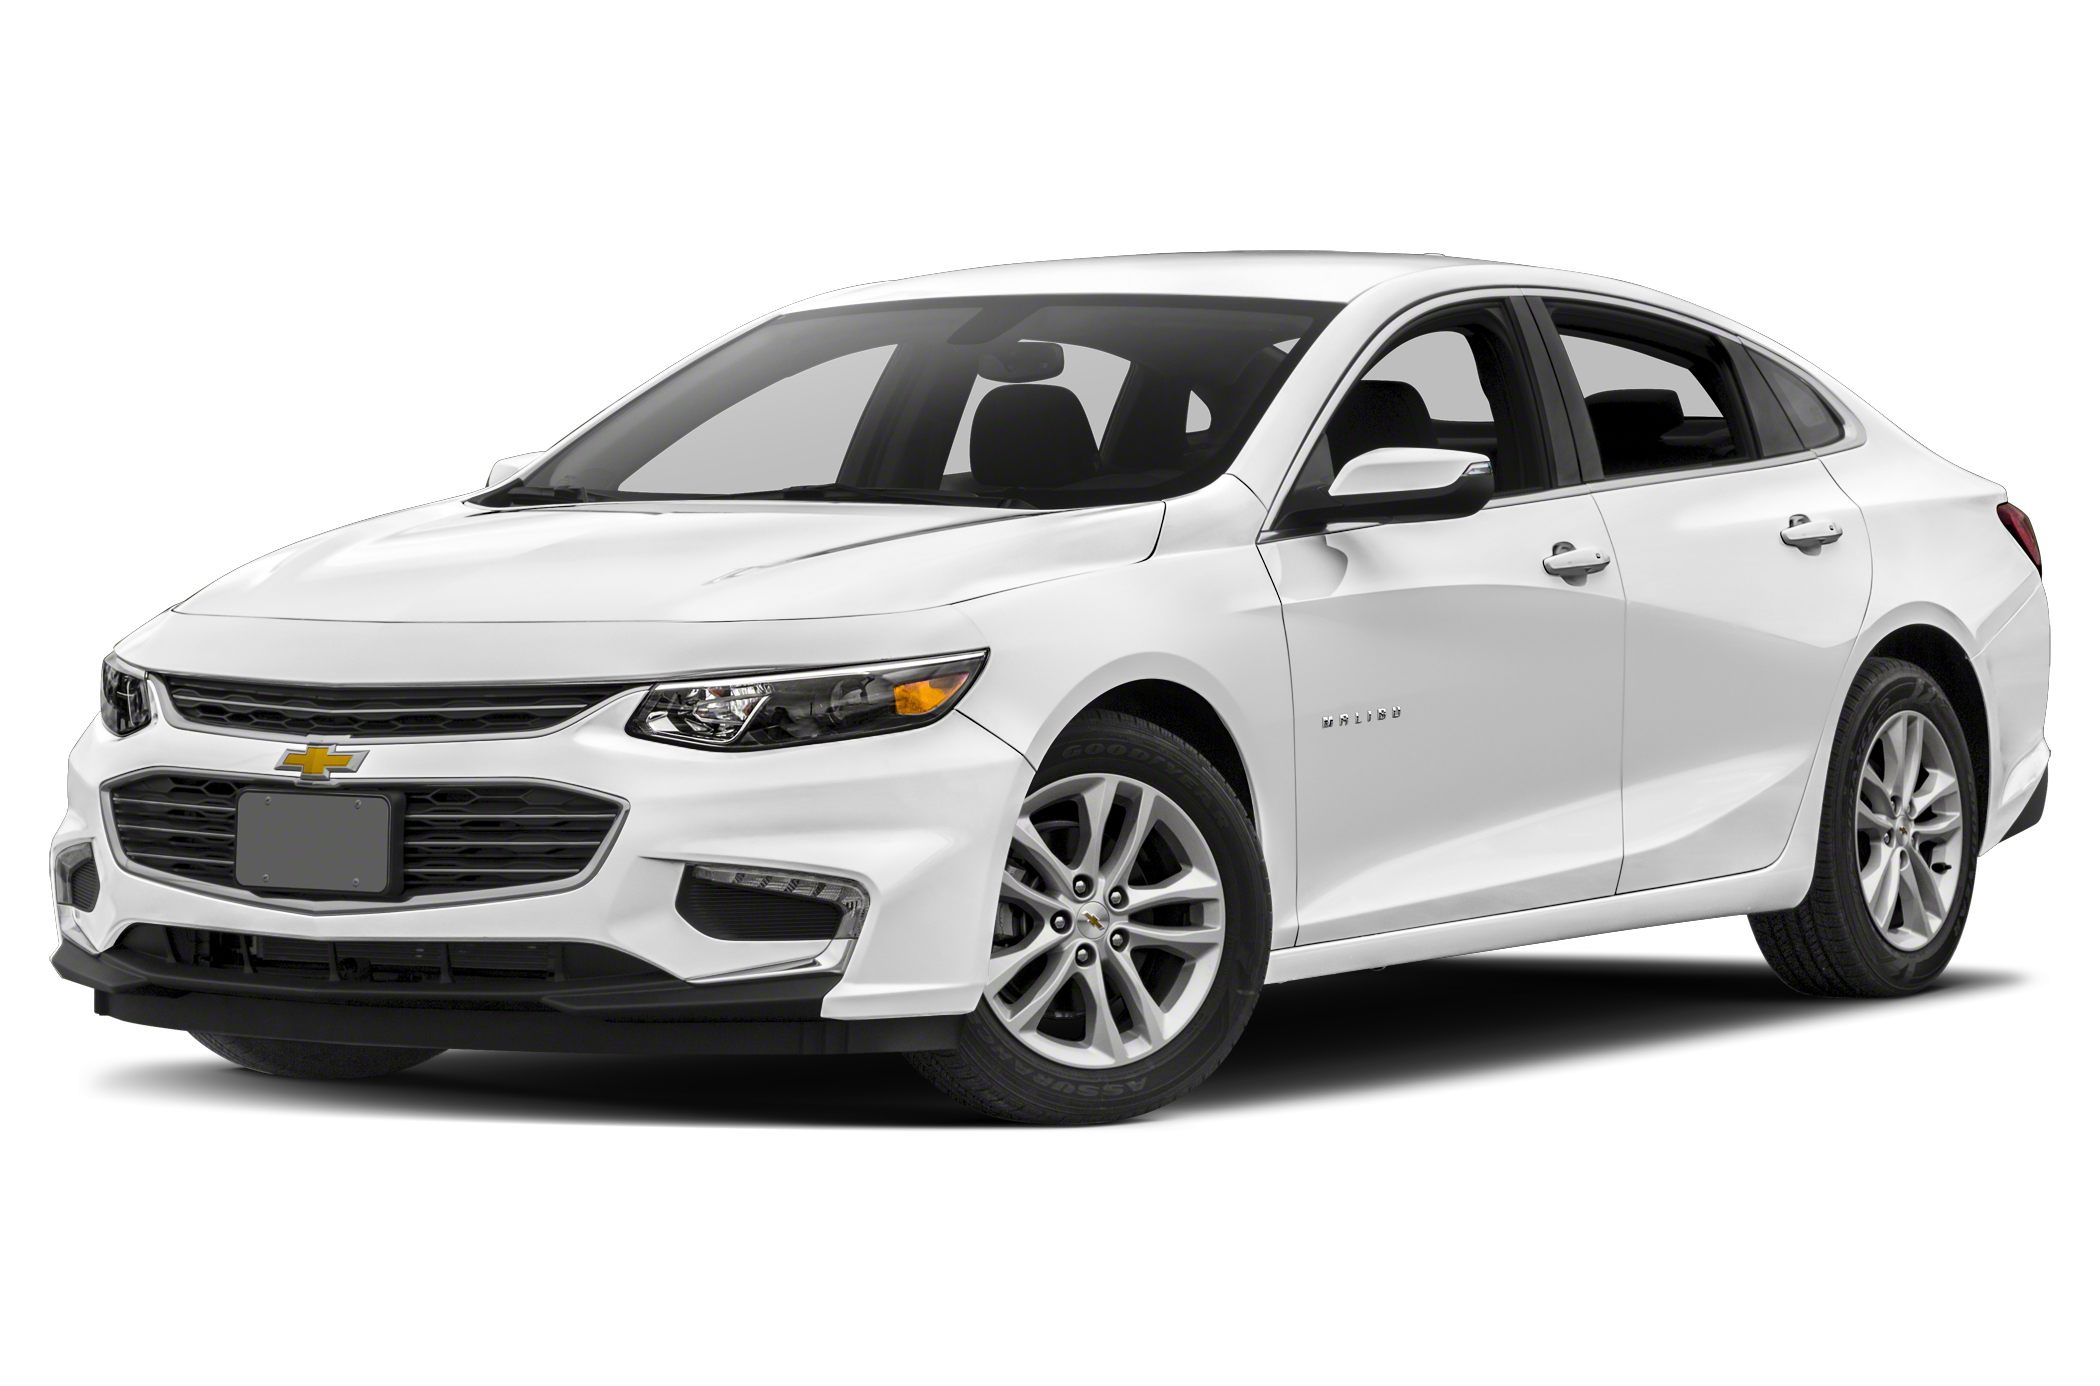 Cars for Sale Under 10000 In Amarillo Tx Best Of Amarillo Tx Used Cars for Sale Under 10 000 Miles and Less Than